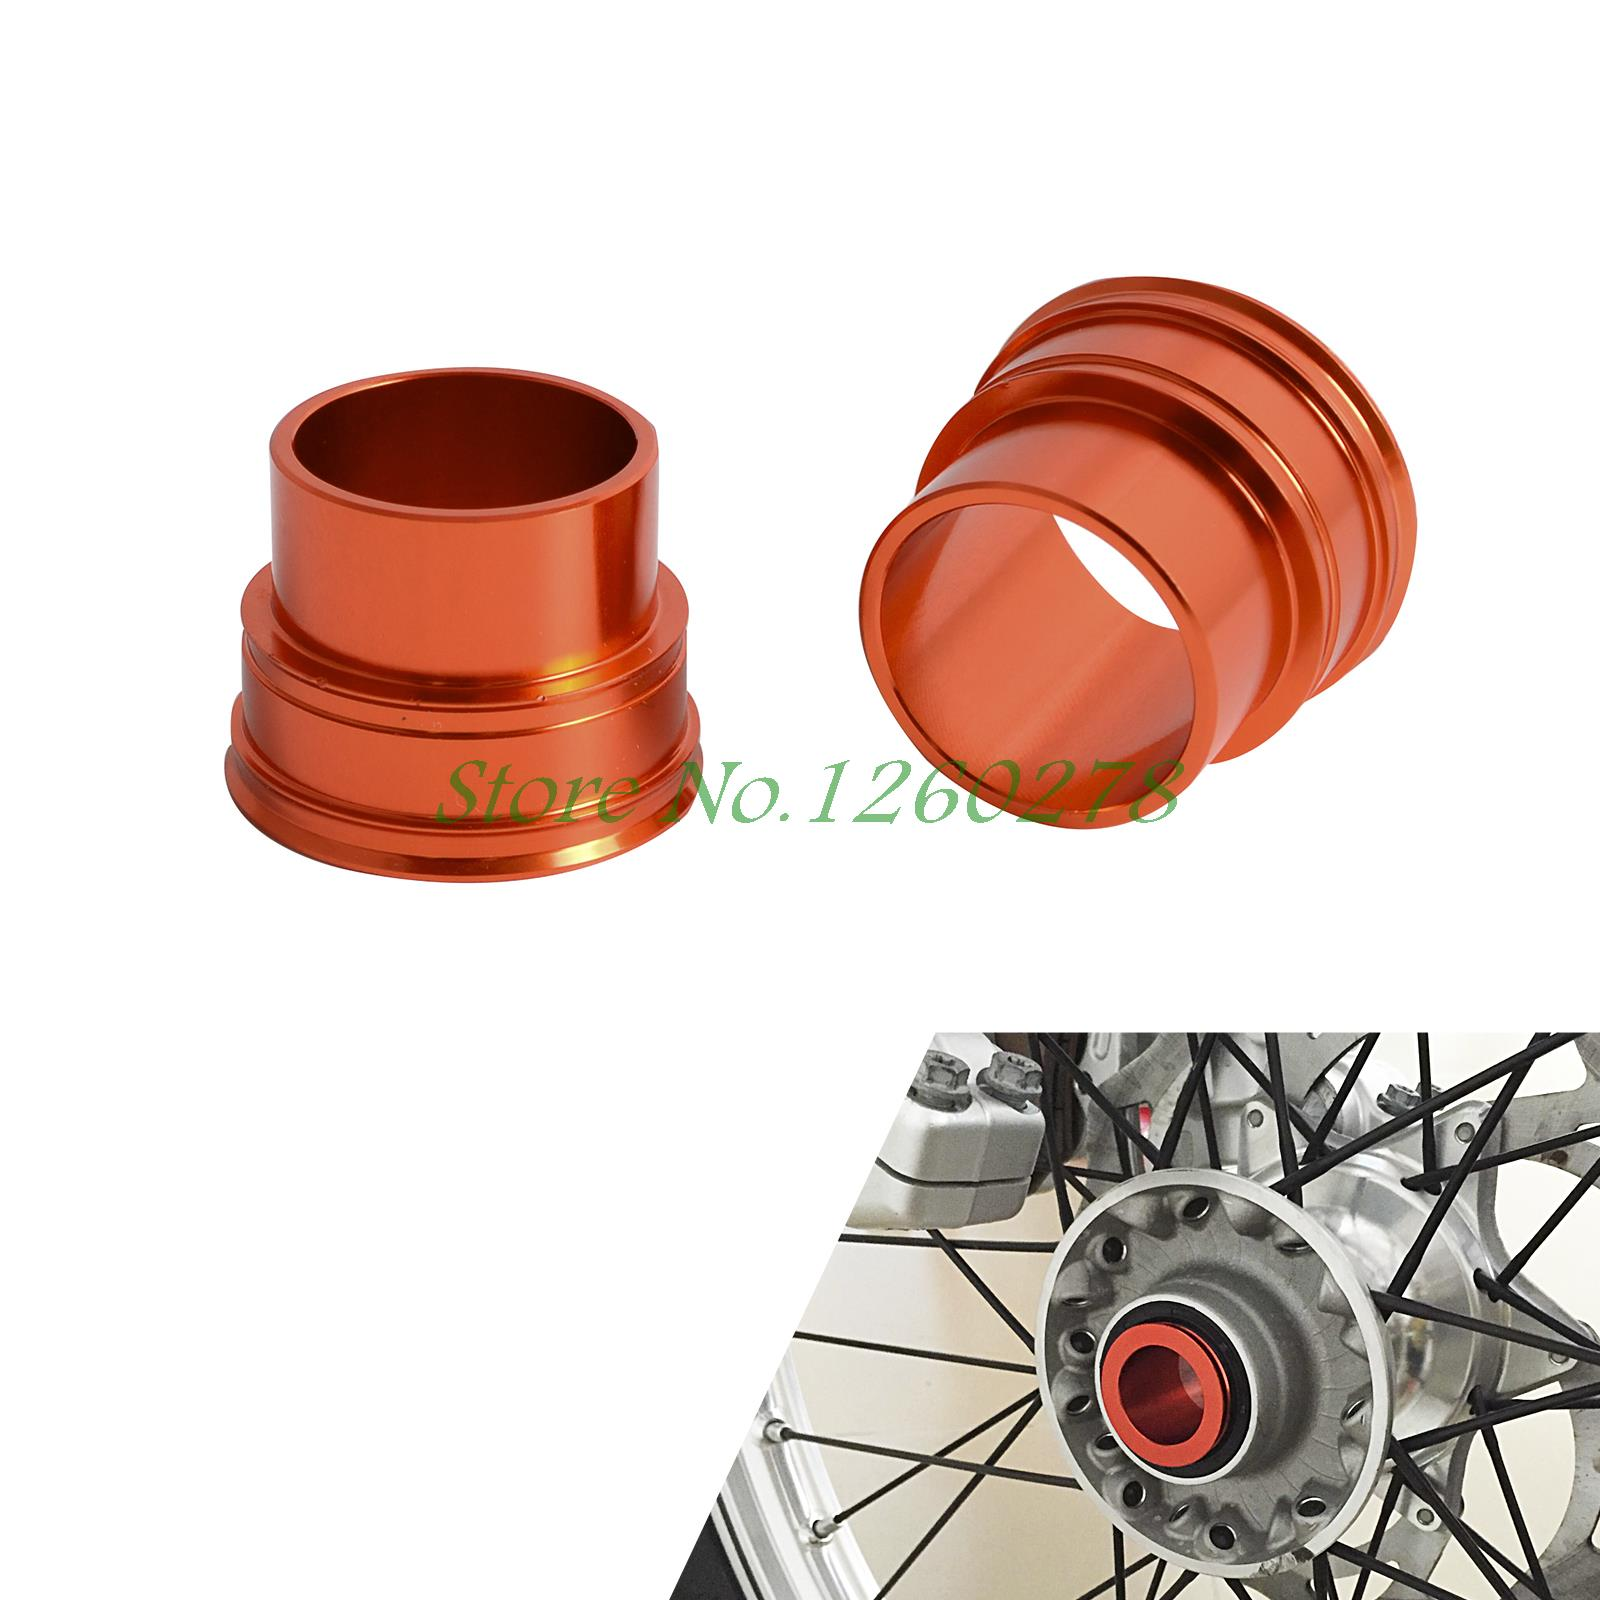 NICECNC Front Wheel Hub Spacers Collars For KTM 125 200 250 300 350 450 530 690 SX SXF XCF EXC EXCF EXCW XCW SMR Enduro/R DUKE motorcycle front rider seat leather cover for ktm 125 200 390 duke